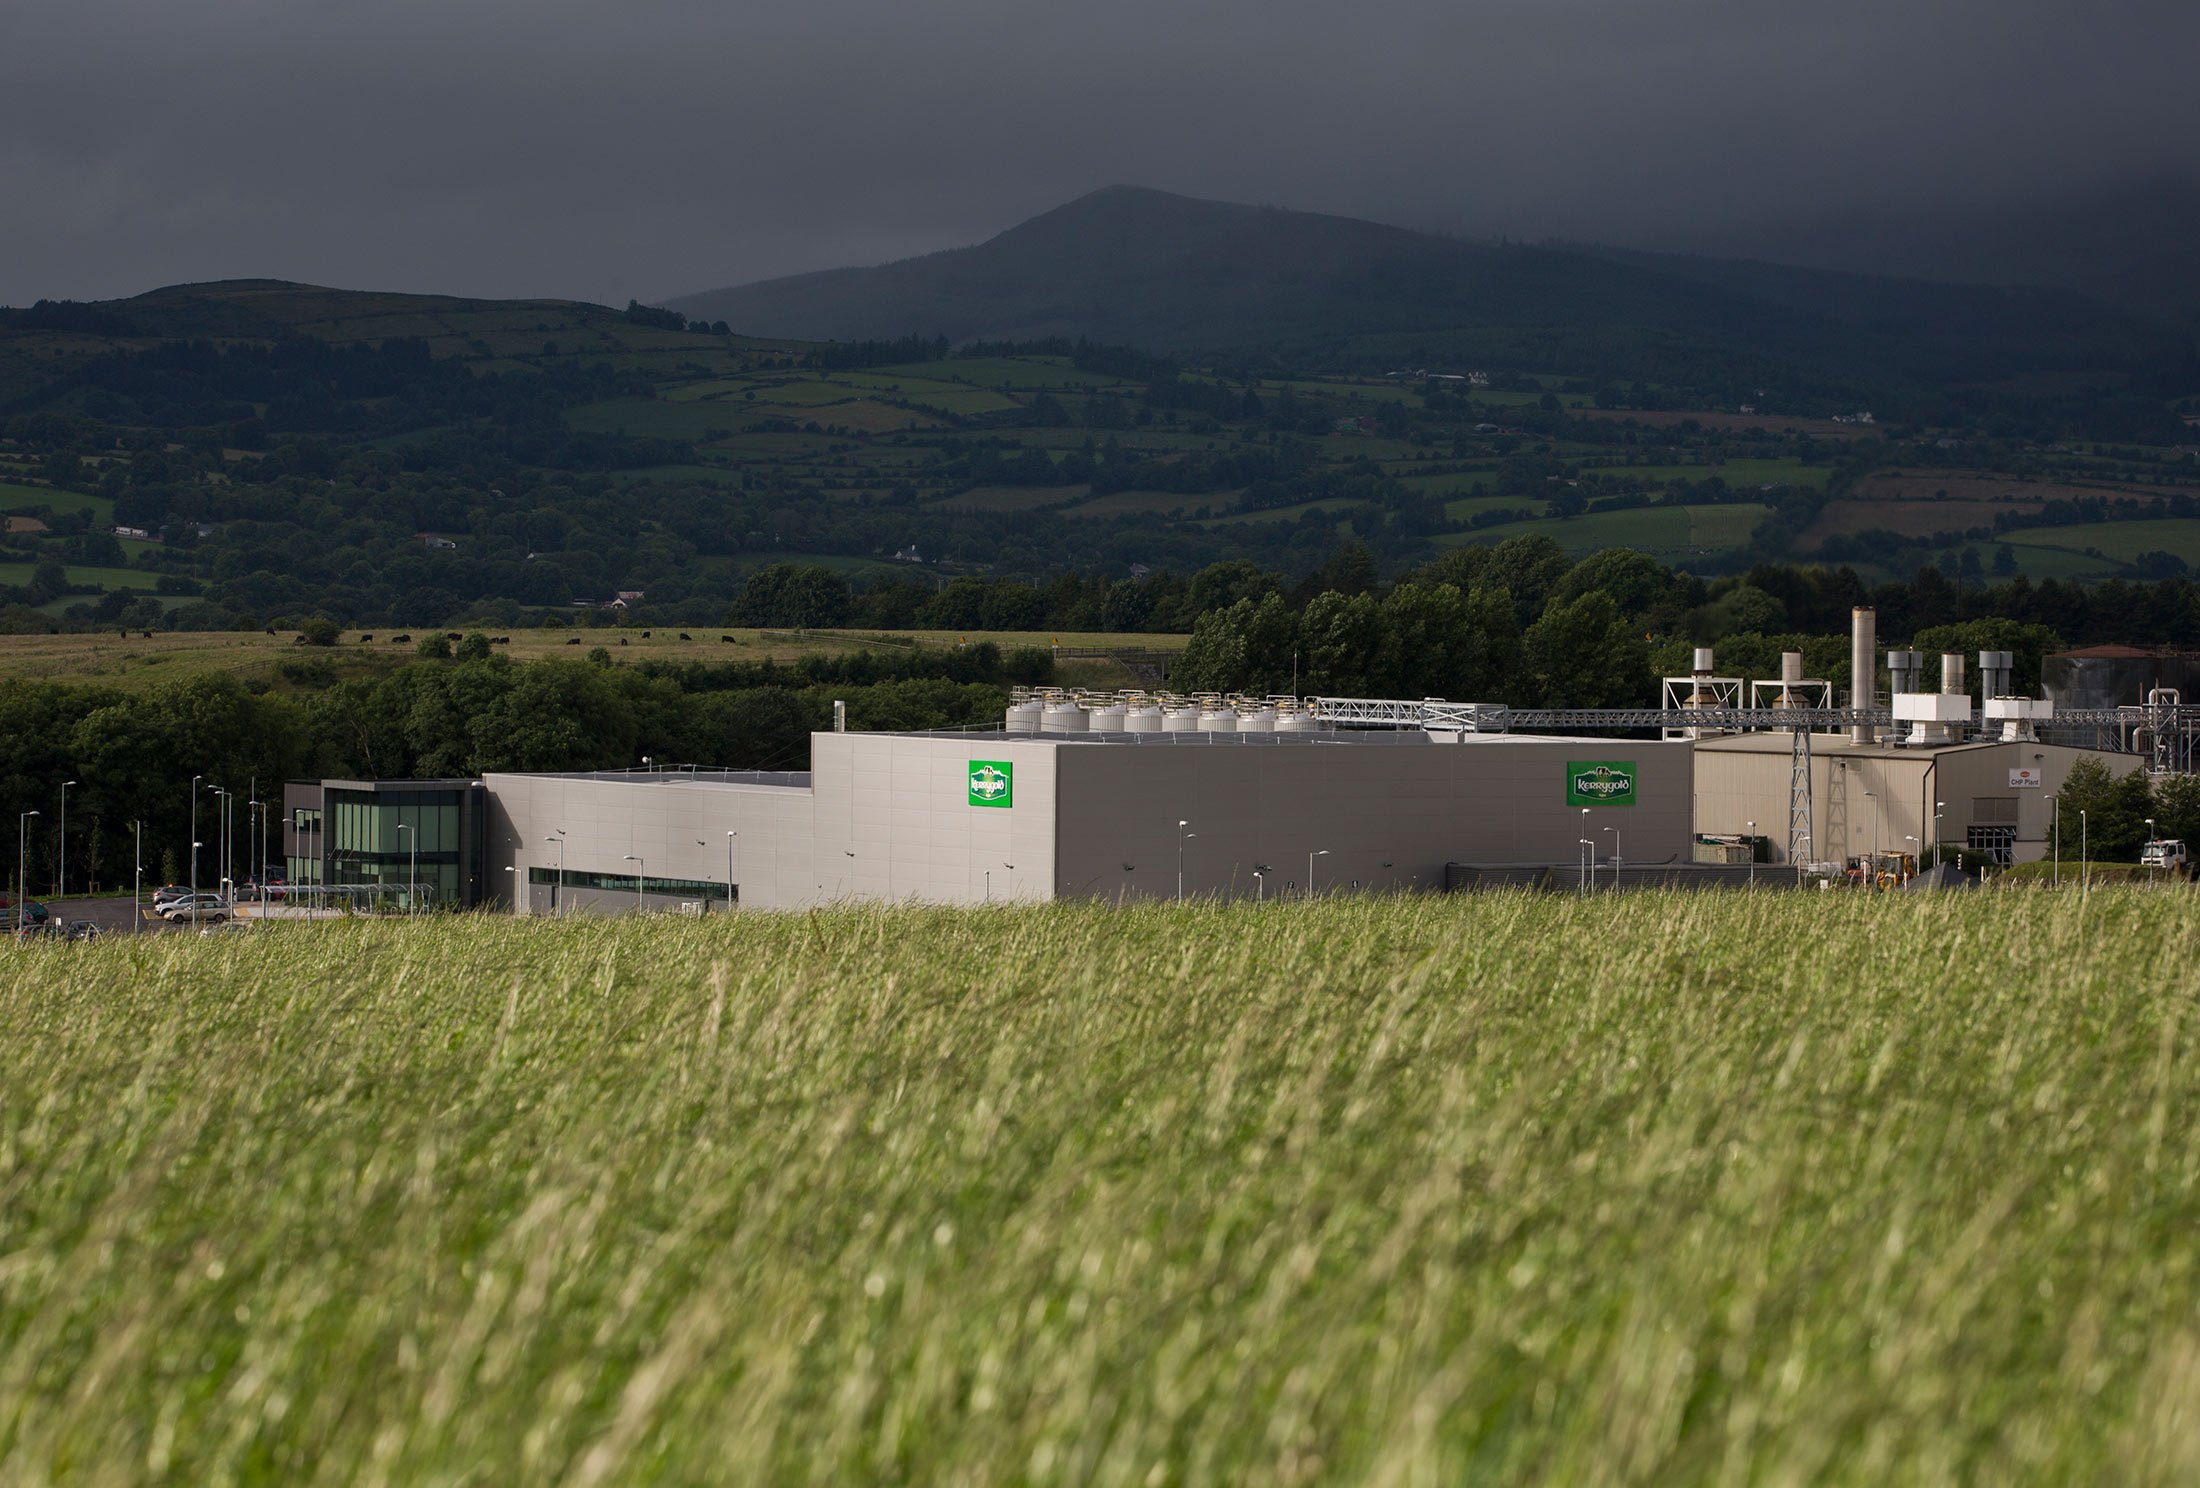 The facility at Kerrygold Park is capable of producing up to 50,000 tons of butter per year.